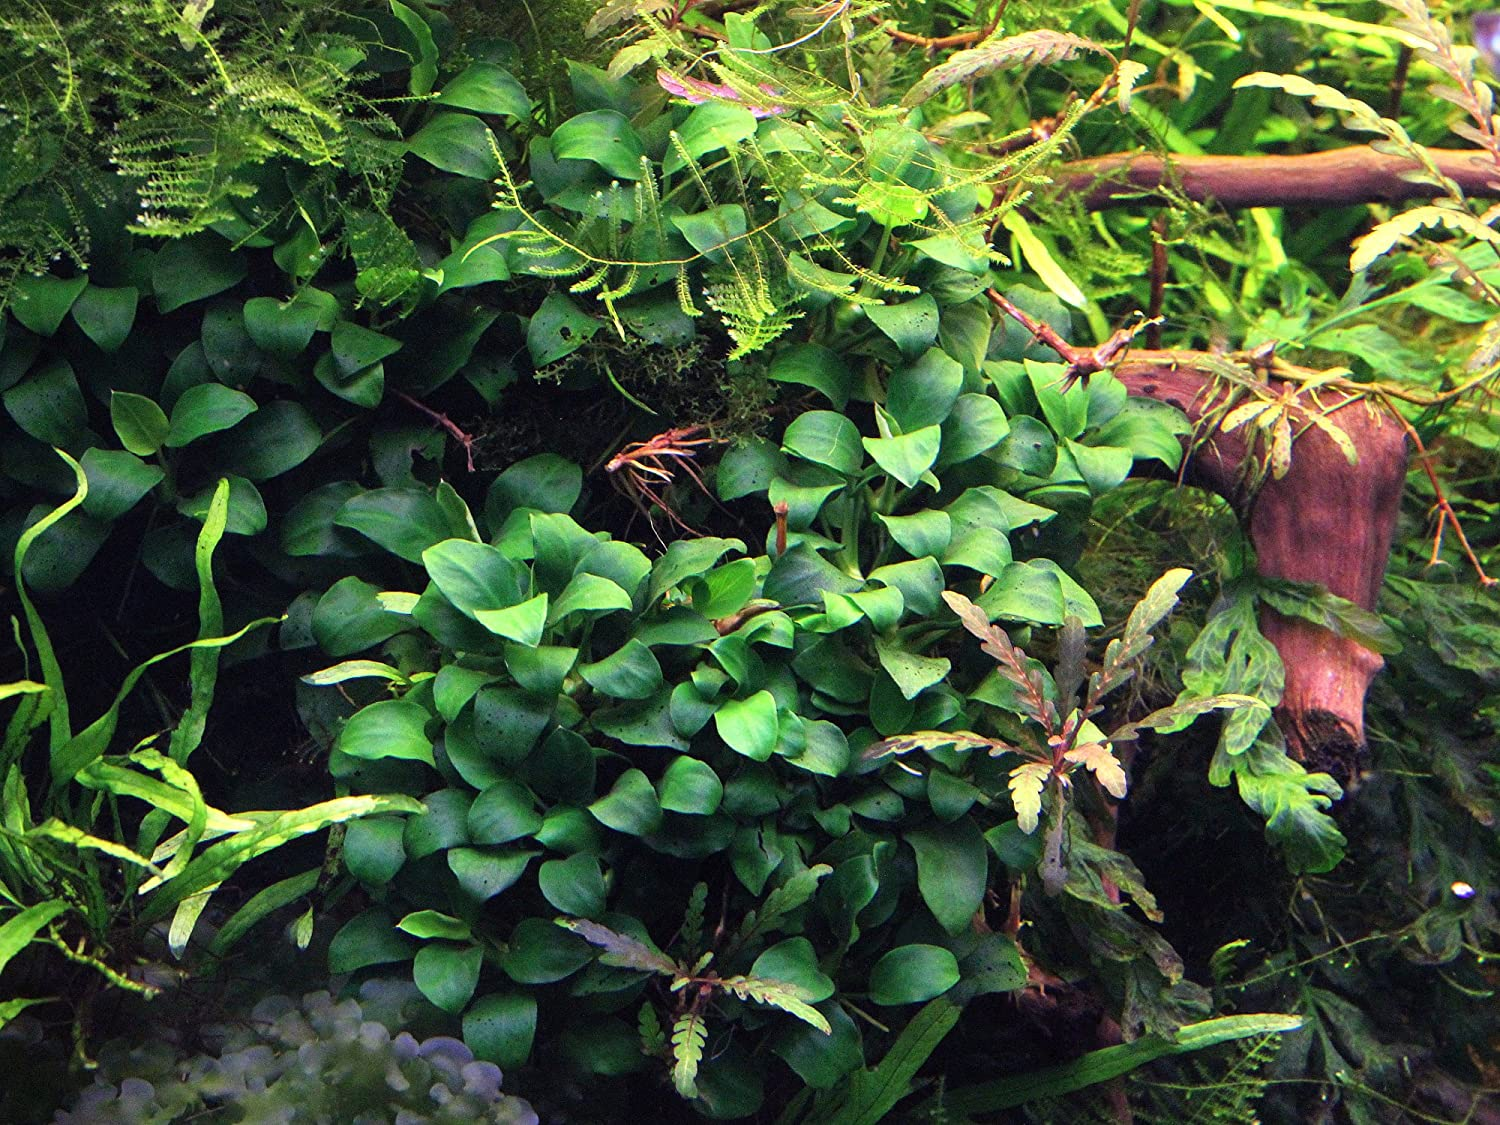 Live Aquarium Plant Dennerle Anubias Nana Bonsai Eu Grown Shrimp Safe Live Plants